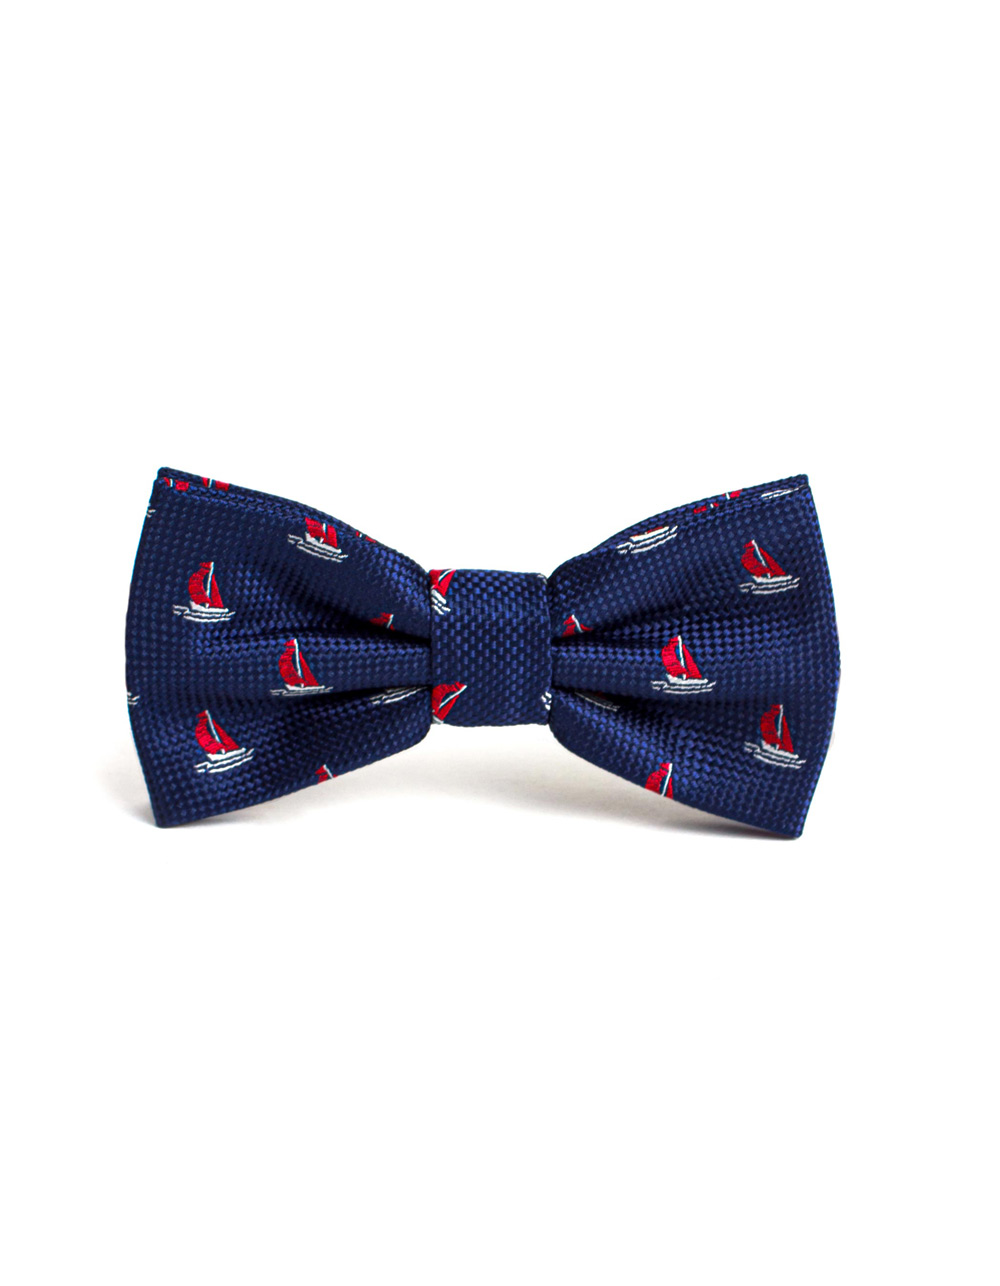 Marine tie with a sailboat print